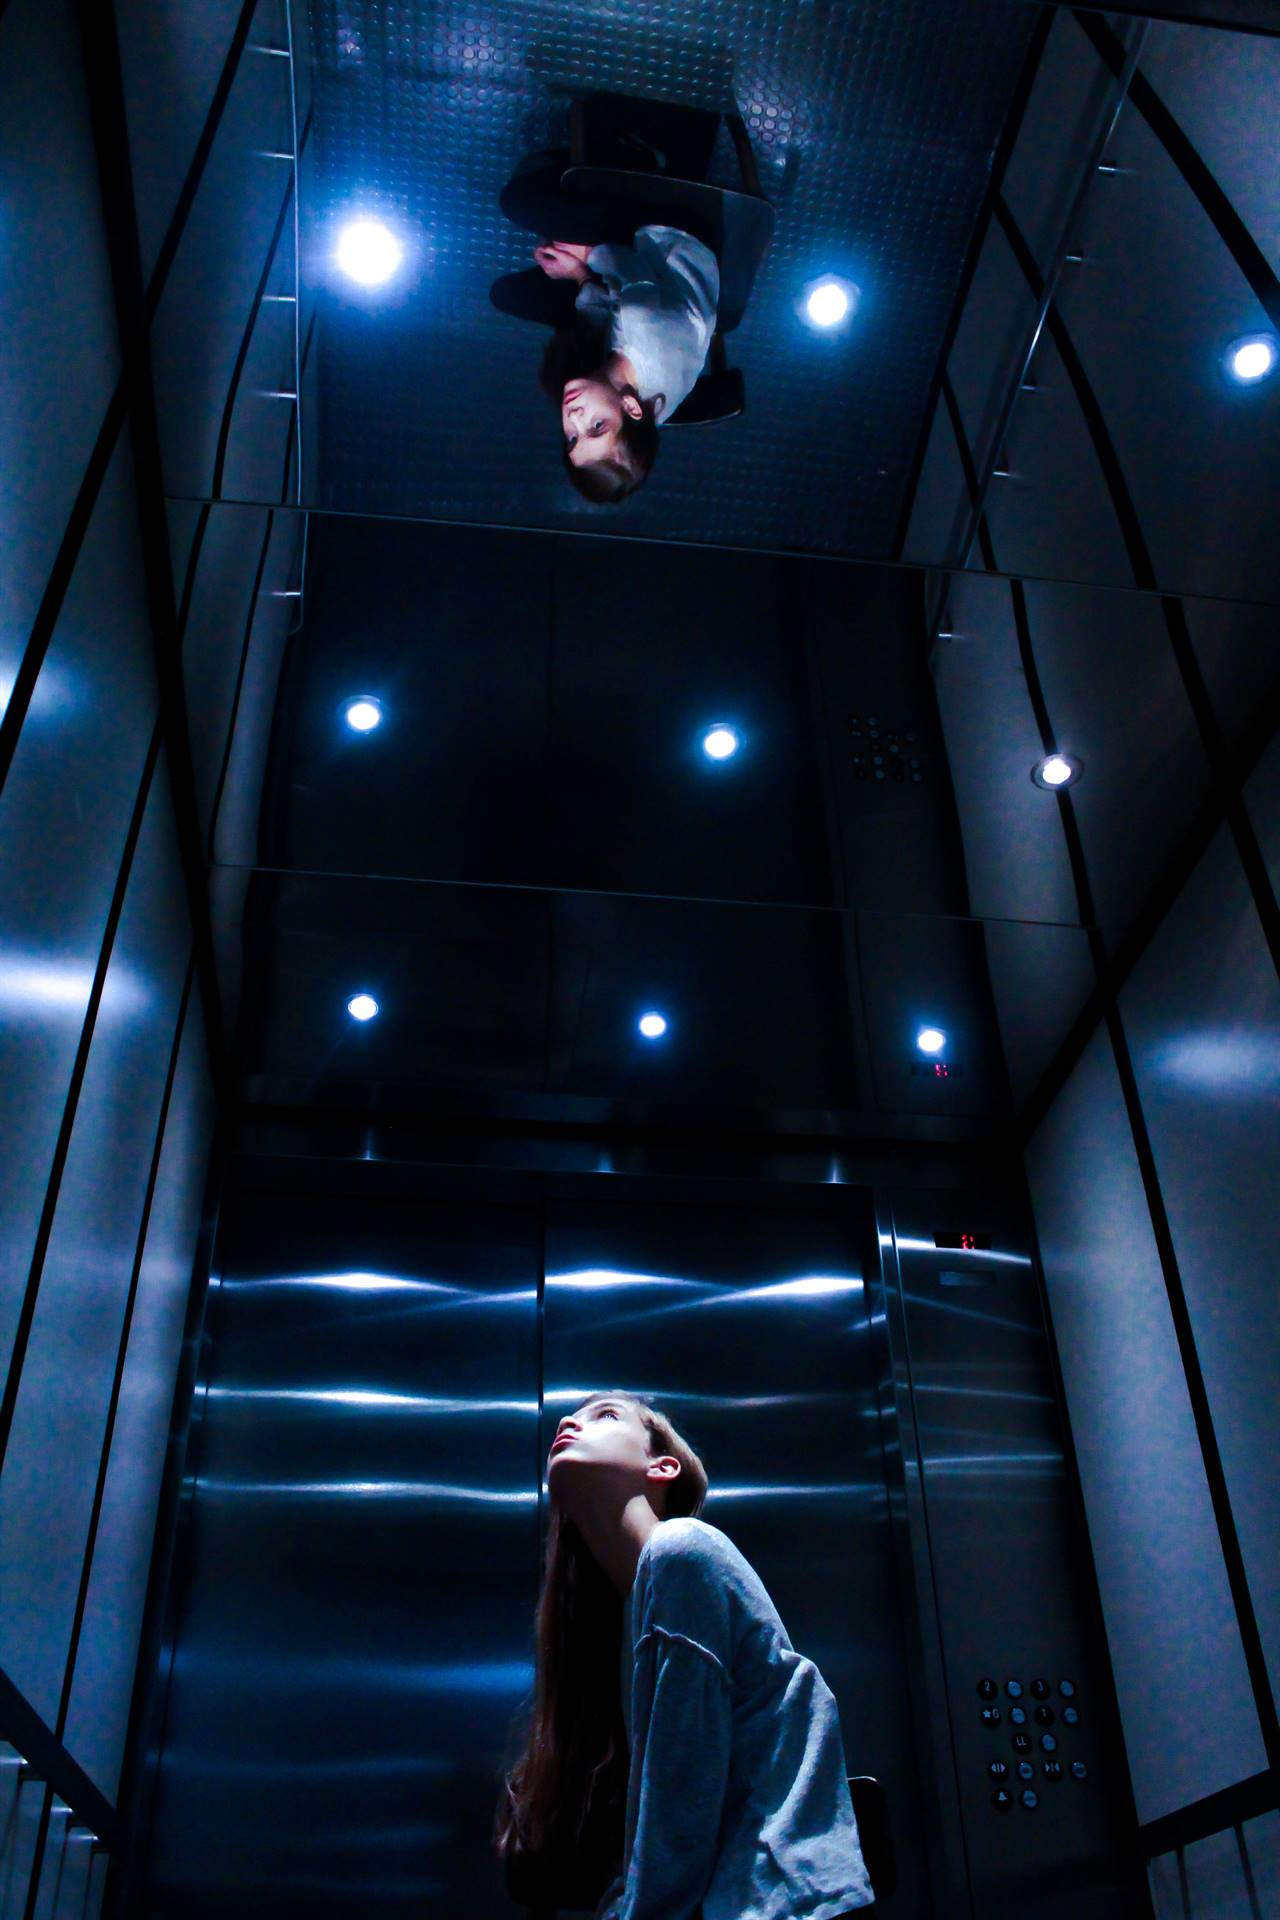 Girl looking up in an elevator at her reflection on the ceiling